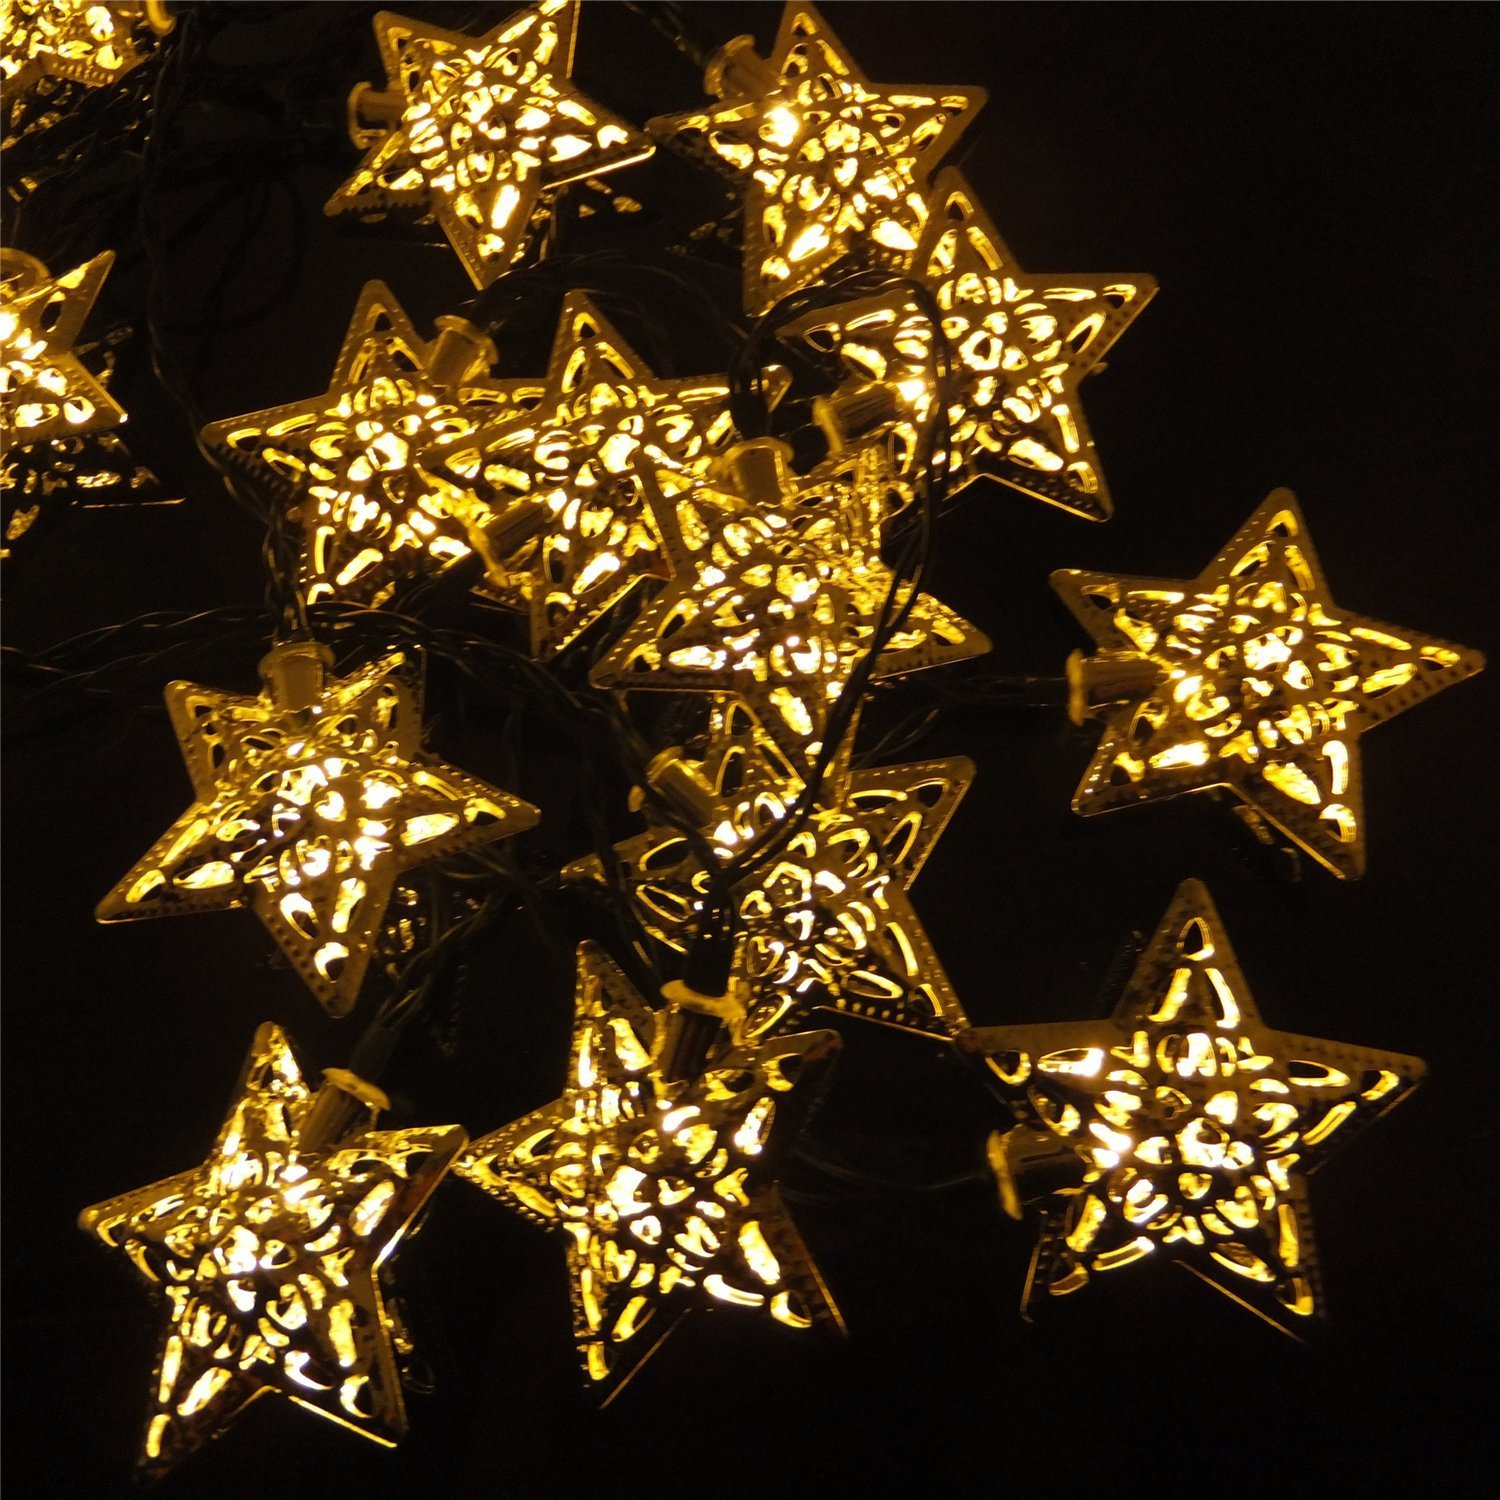 Christmas party decor solar powered silver star led string lights outdoor garden - Decorative garden lights ...